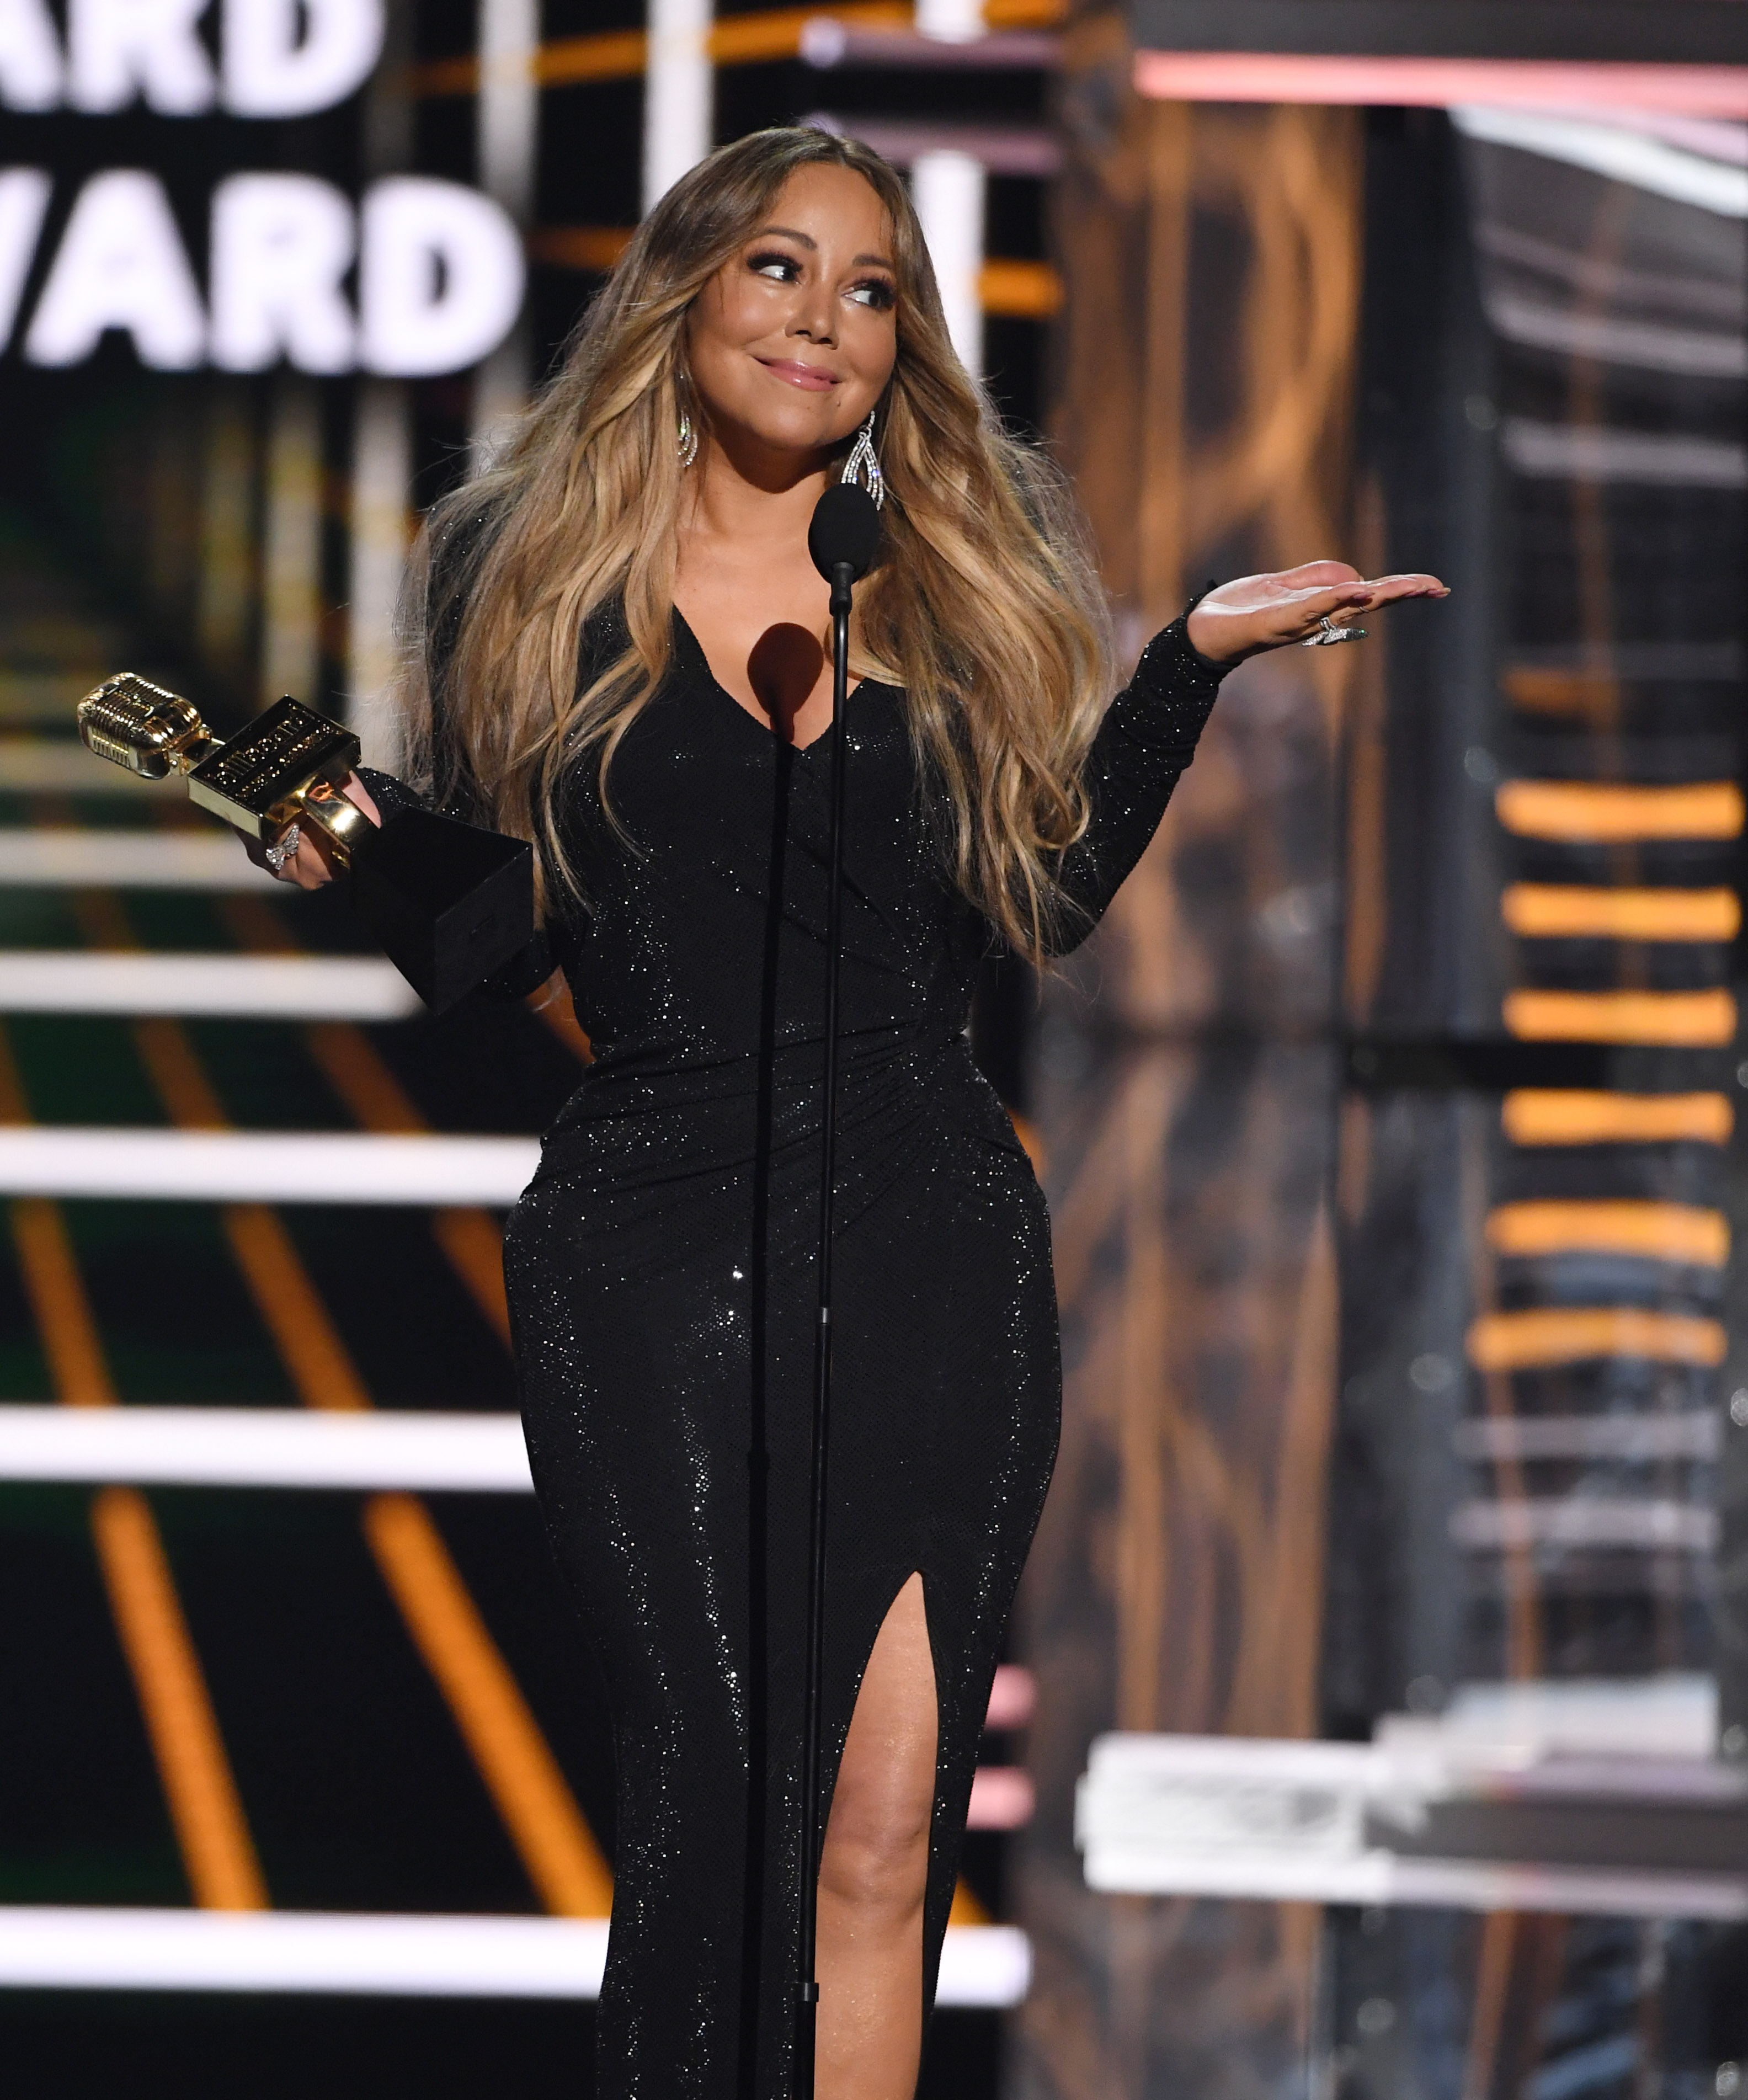 Mariah Carey Claims She's Only 'Been With' Five People Her Entire Life